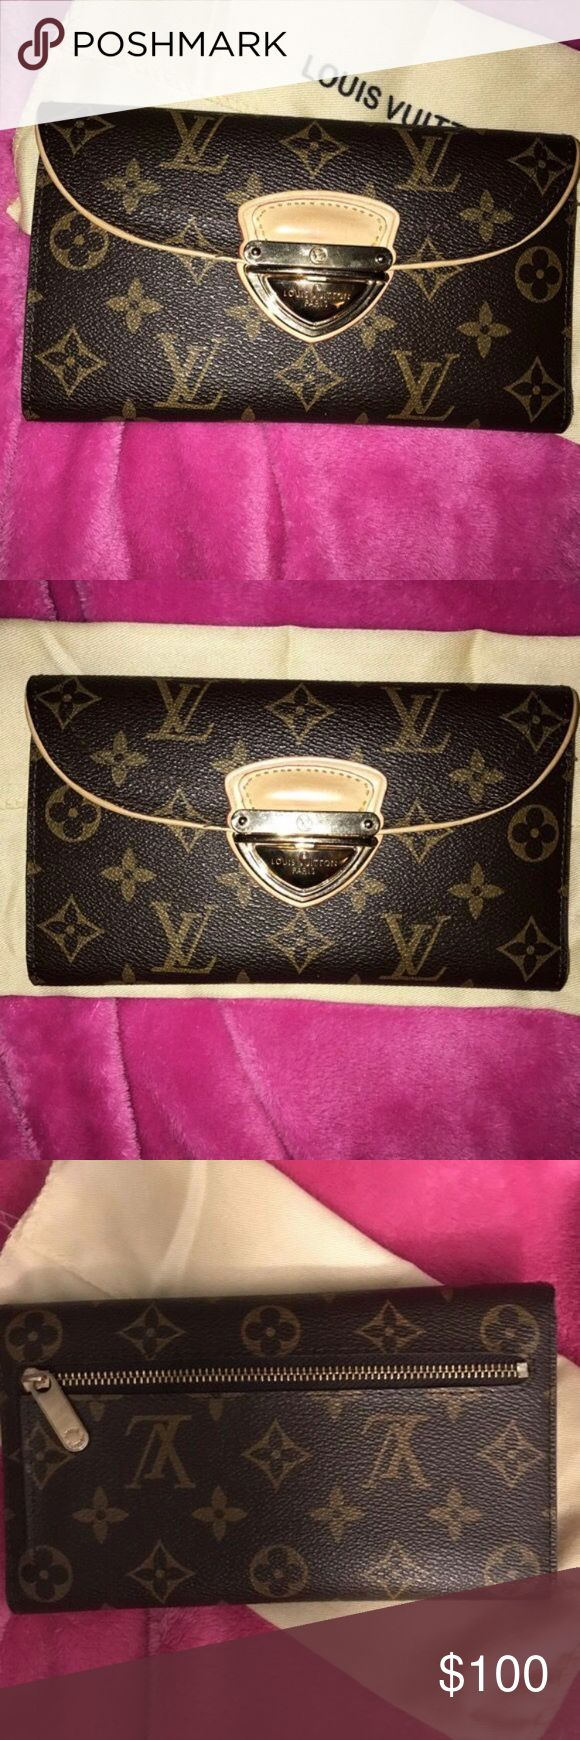 Louis Vuitton Wallet Price reflects authenticity. Used a few times and in excellent condition. Make me an offer! Bags Wallets